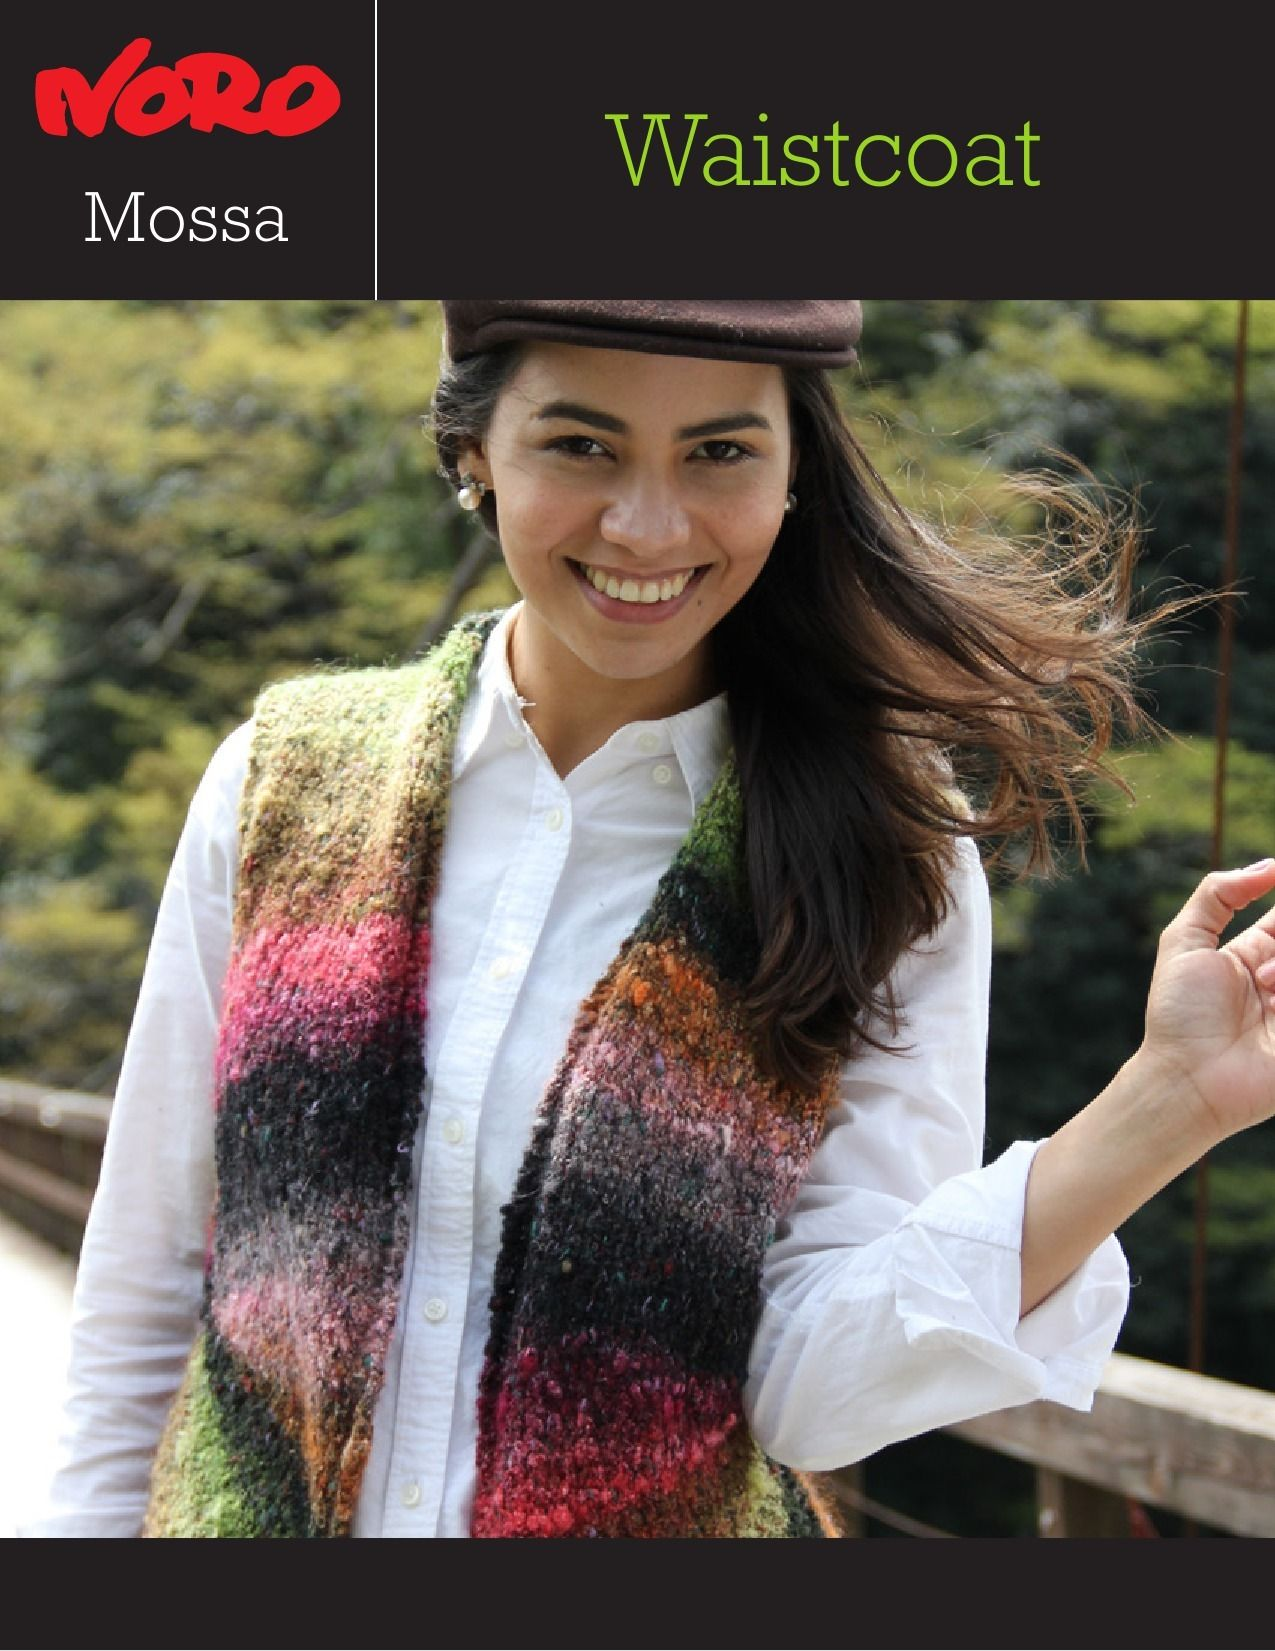 9024598ad Waistcoat in Noro Mossa. Discover more Patterns by Noro at LoveKnitting. We  stock patterns